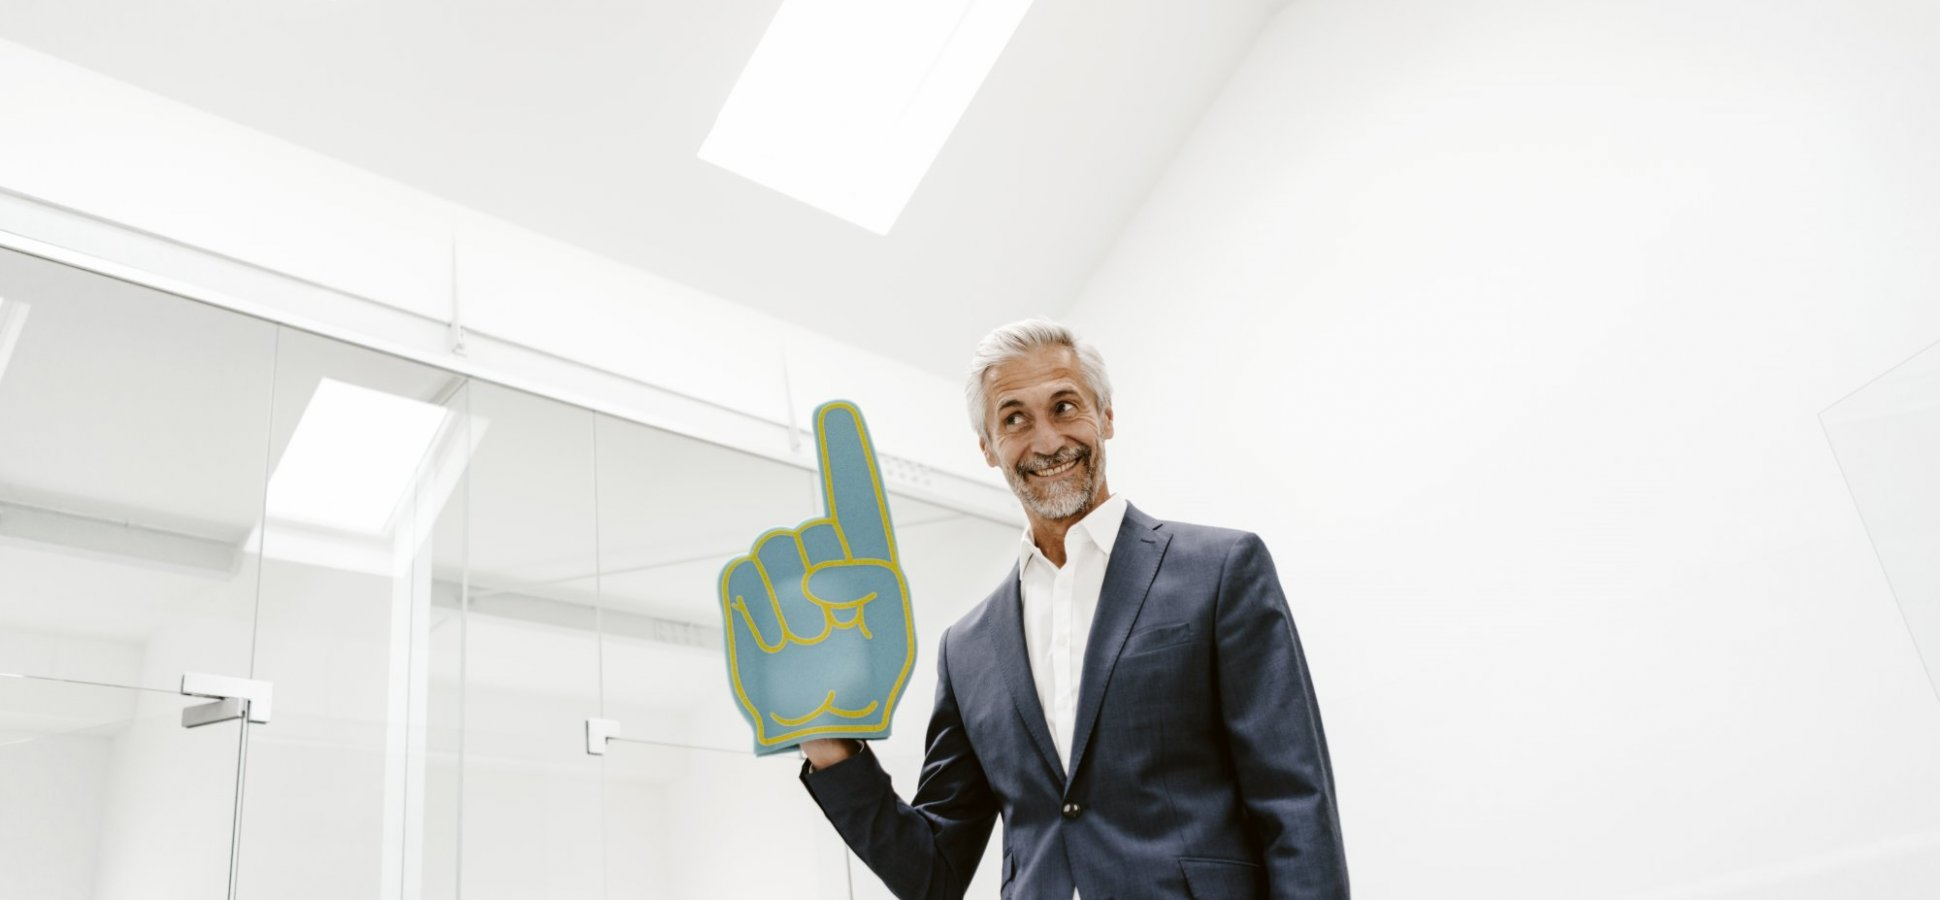 Want to Be a Better Boss? Harvard Business Review Study Says You Need to Be Tough and Nice